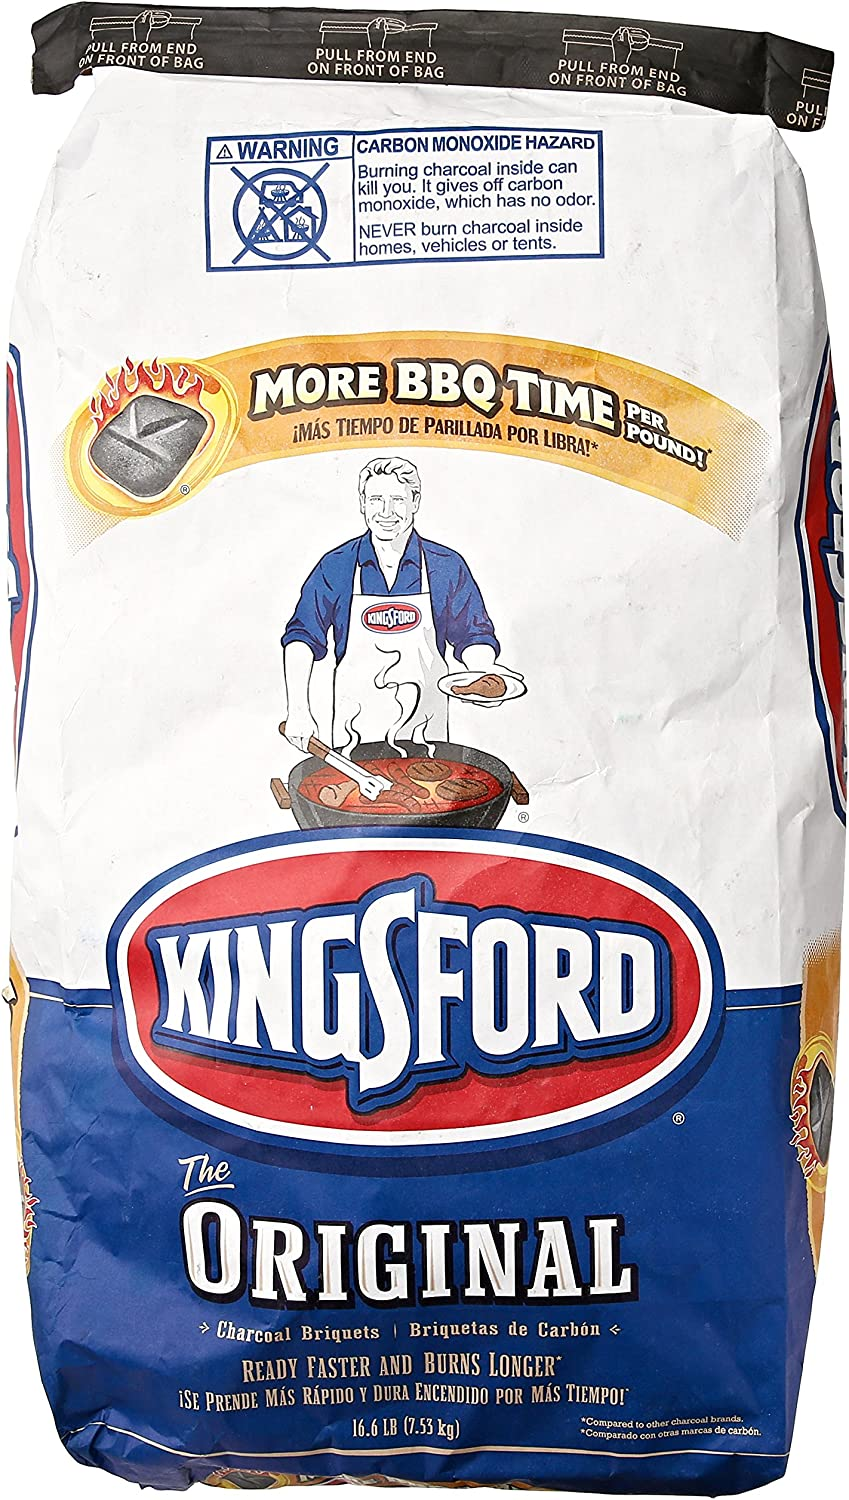 KINGSFORD PRODUCTS CO 16.60LB Kingsf Briquets